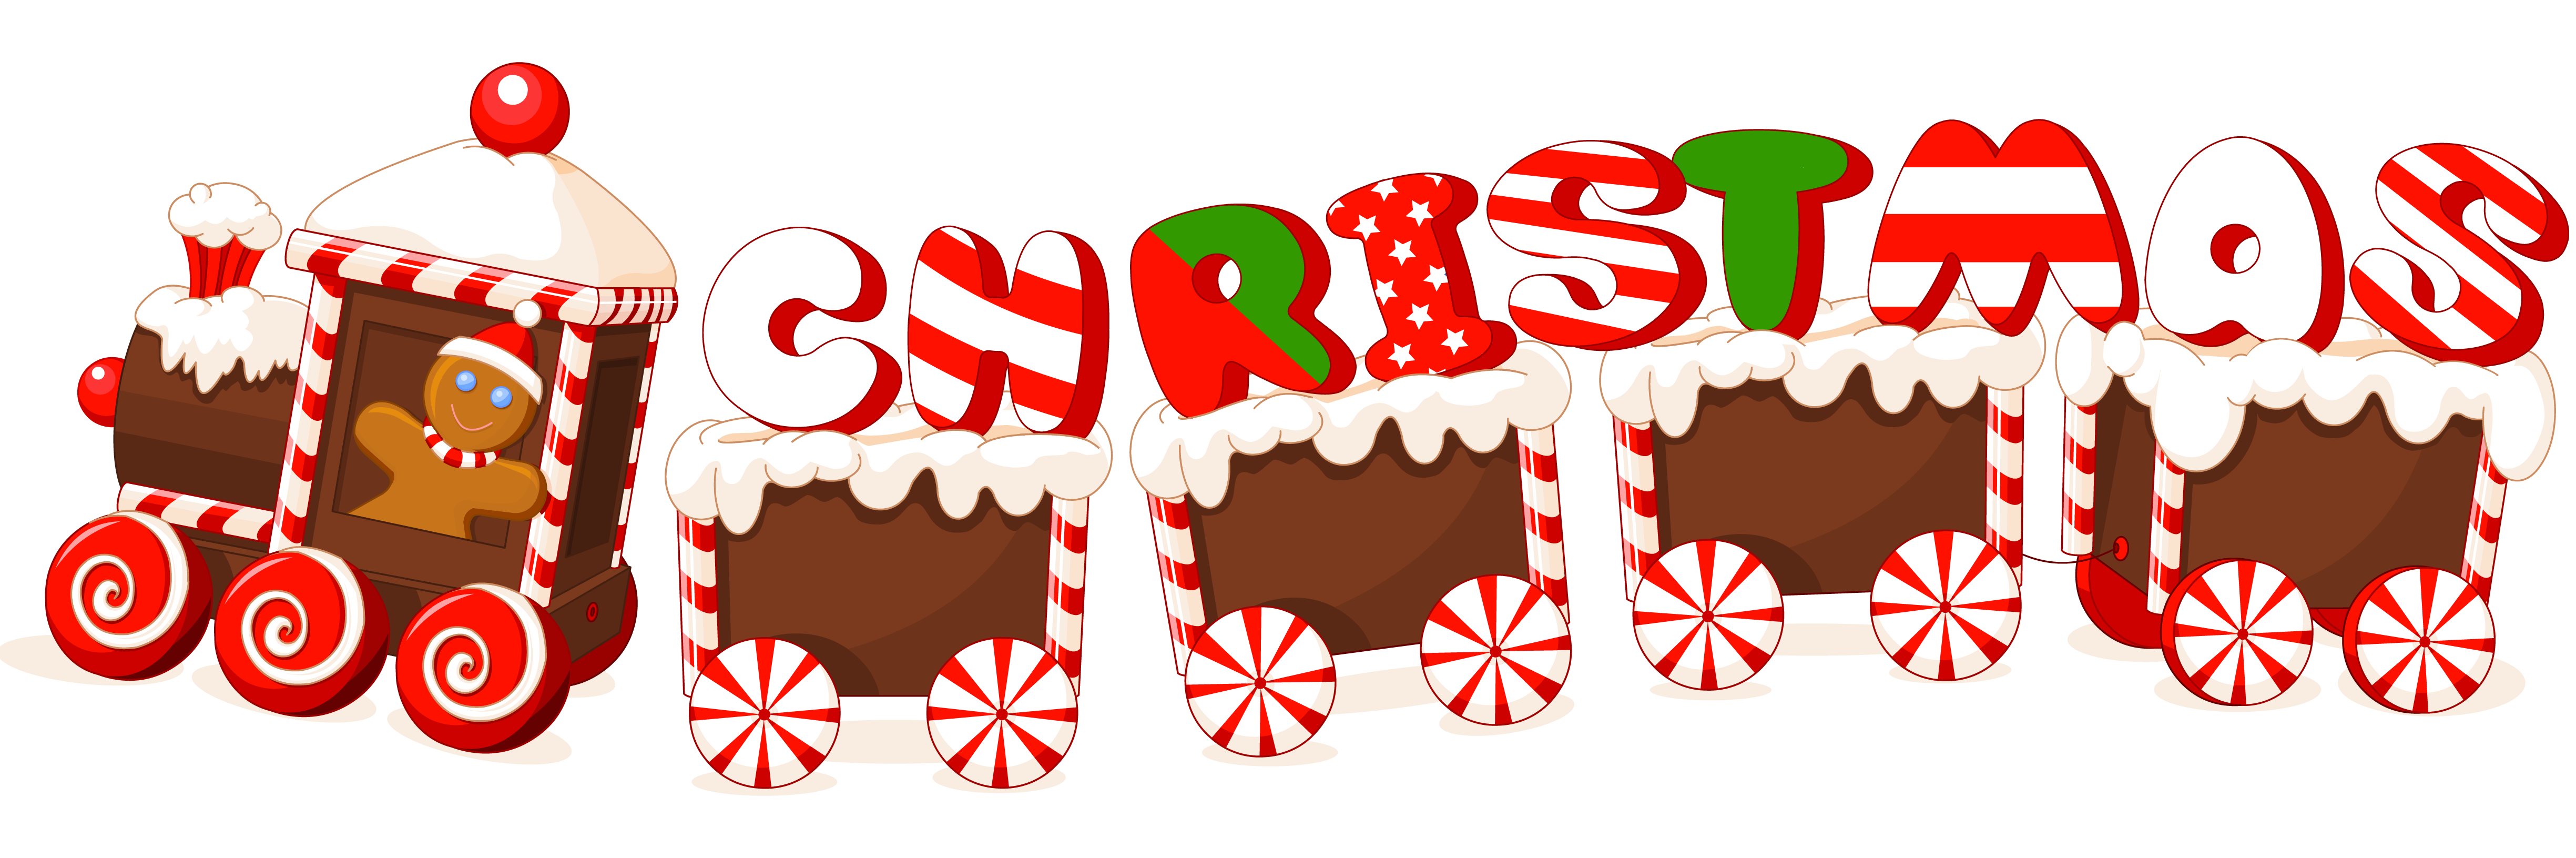 Party clipart merry christmas Clip Savoronmorehead Merry Christmas 16